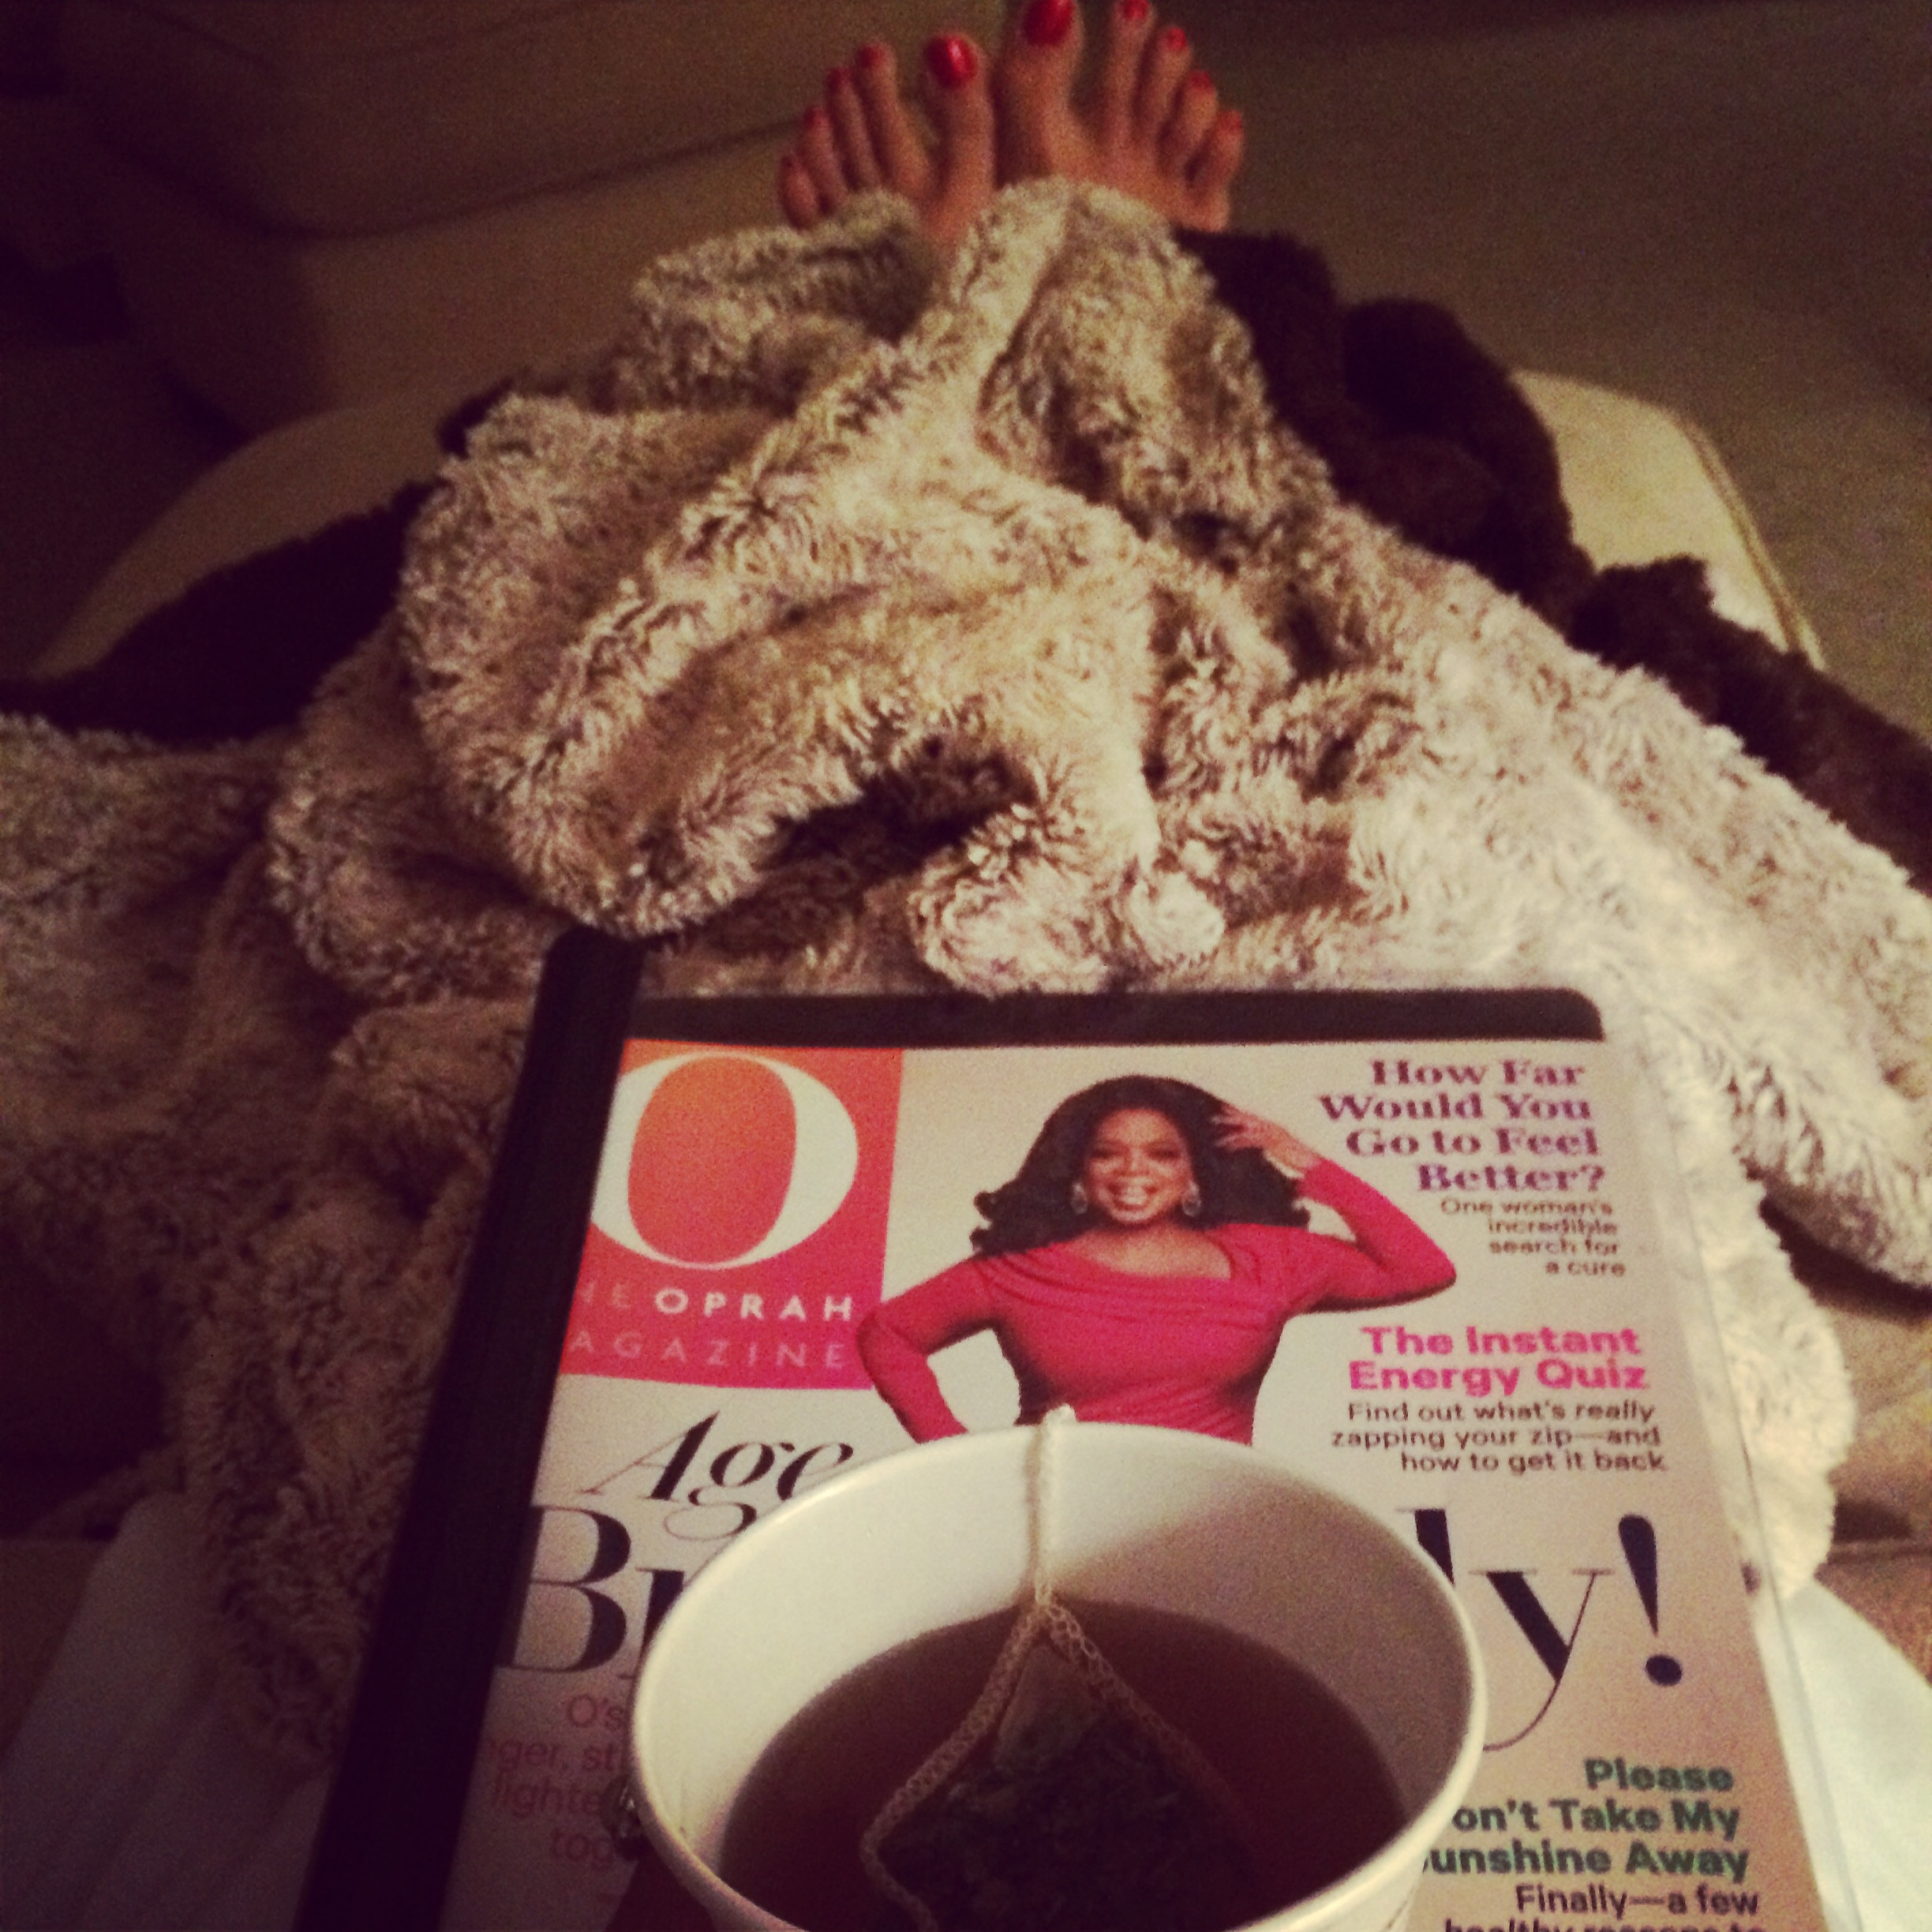 Tea and my favorite snuggly blanket at the spa.